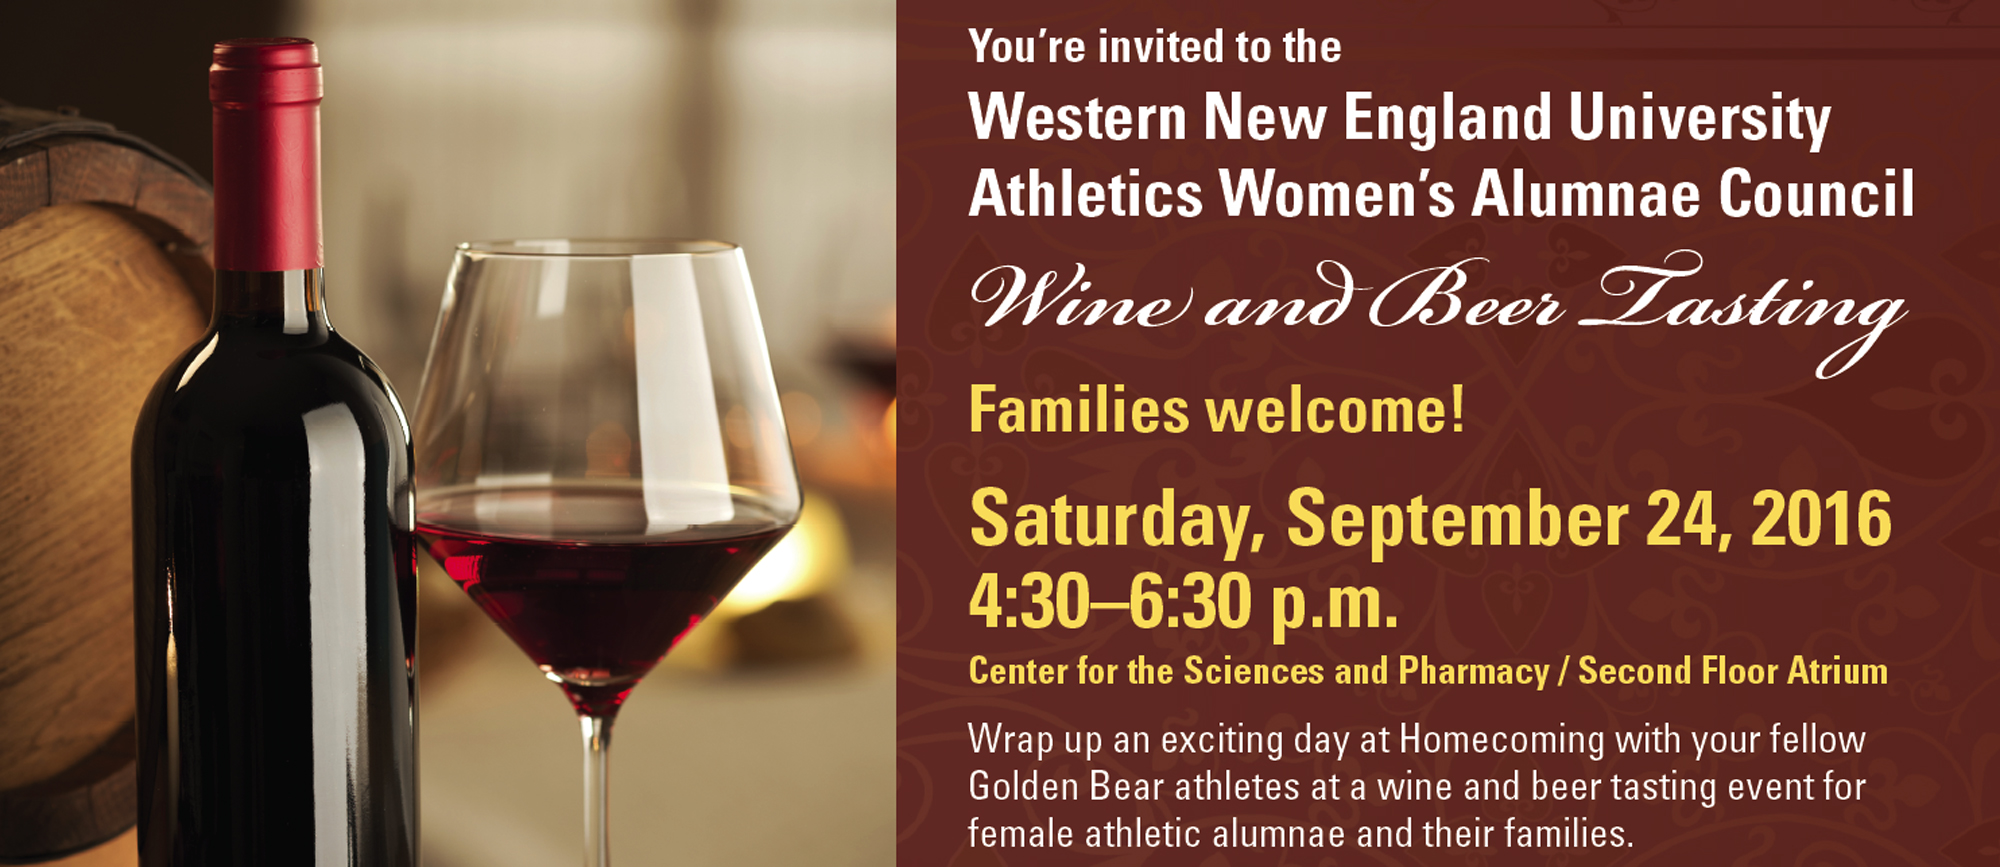 Western New England Athletics Women's Alumnae Council to Host Wine & Beer Tasting on Saturday, September 24